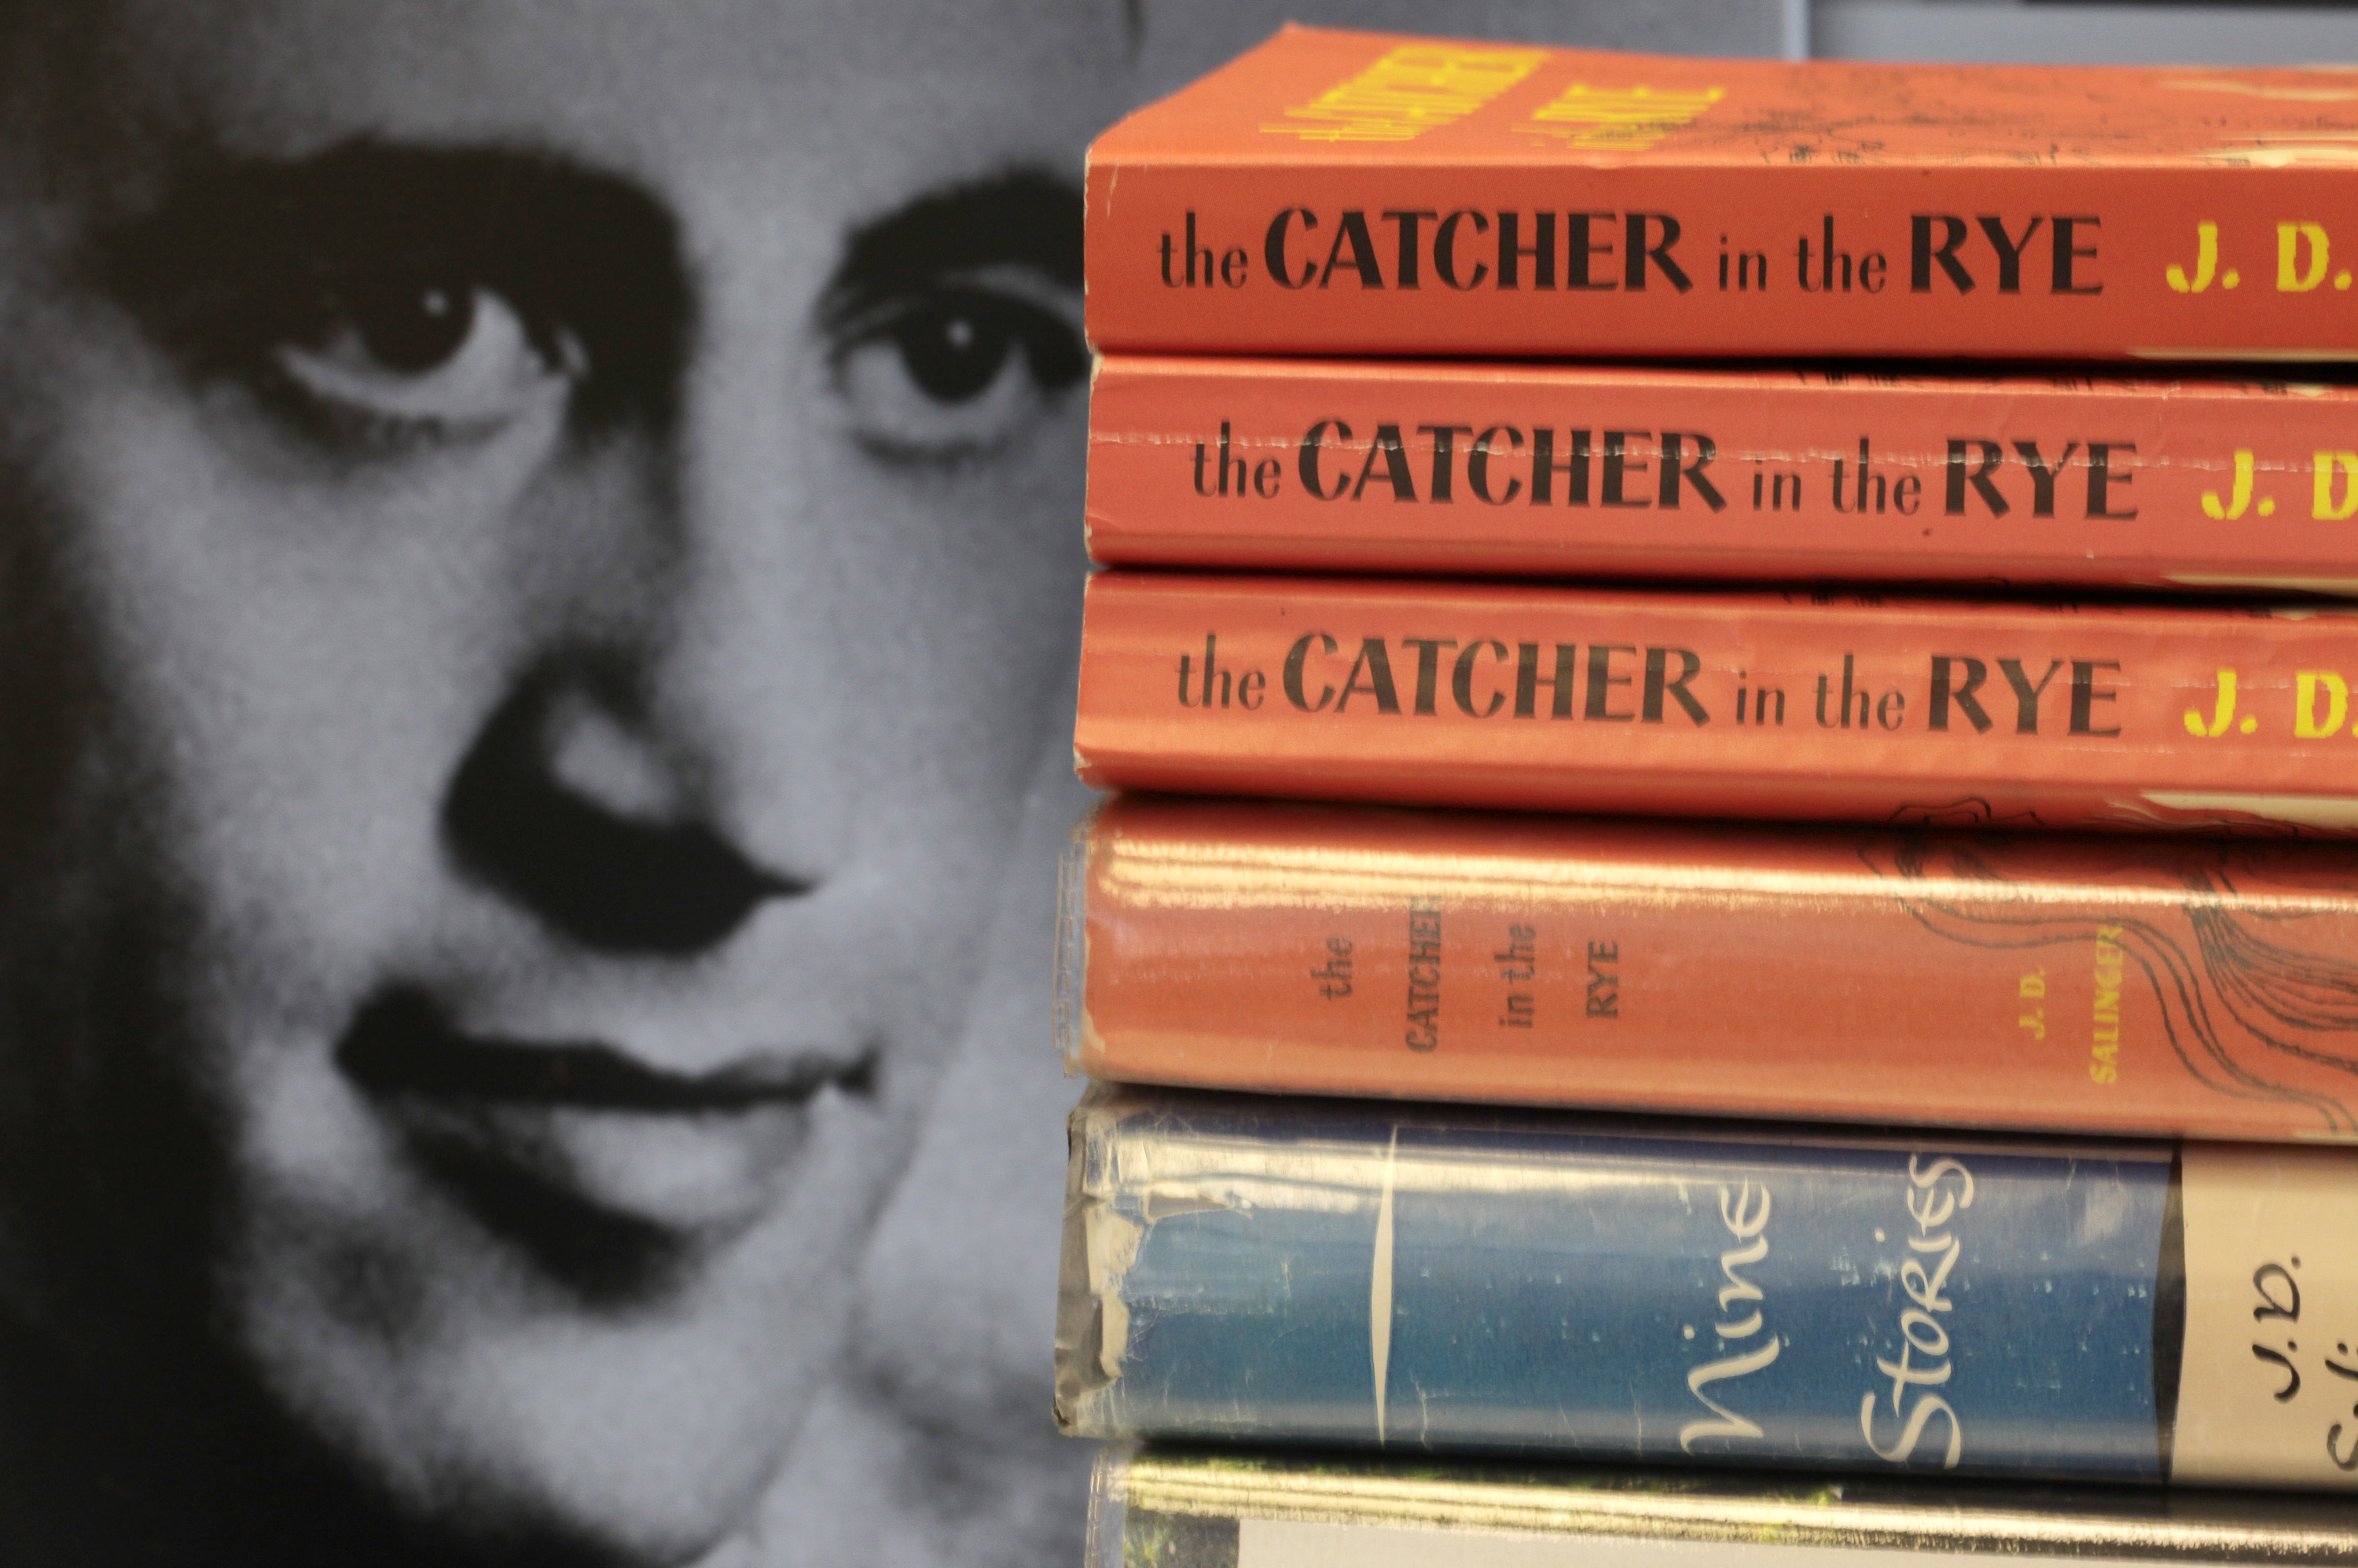 J D Salinger At 100 Is The Catcher In The Rye Still Relevant The Washington Post